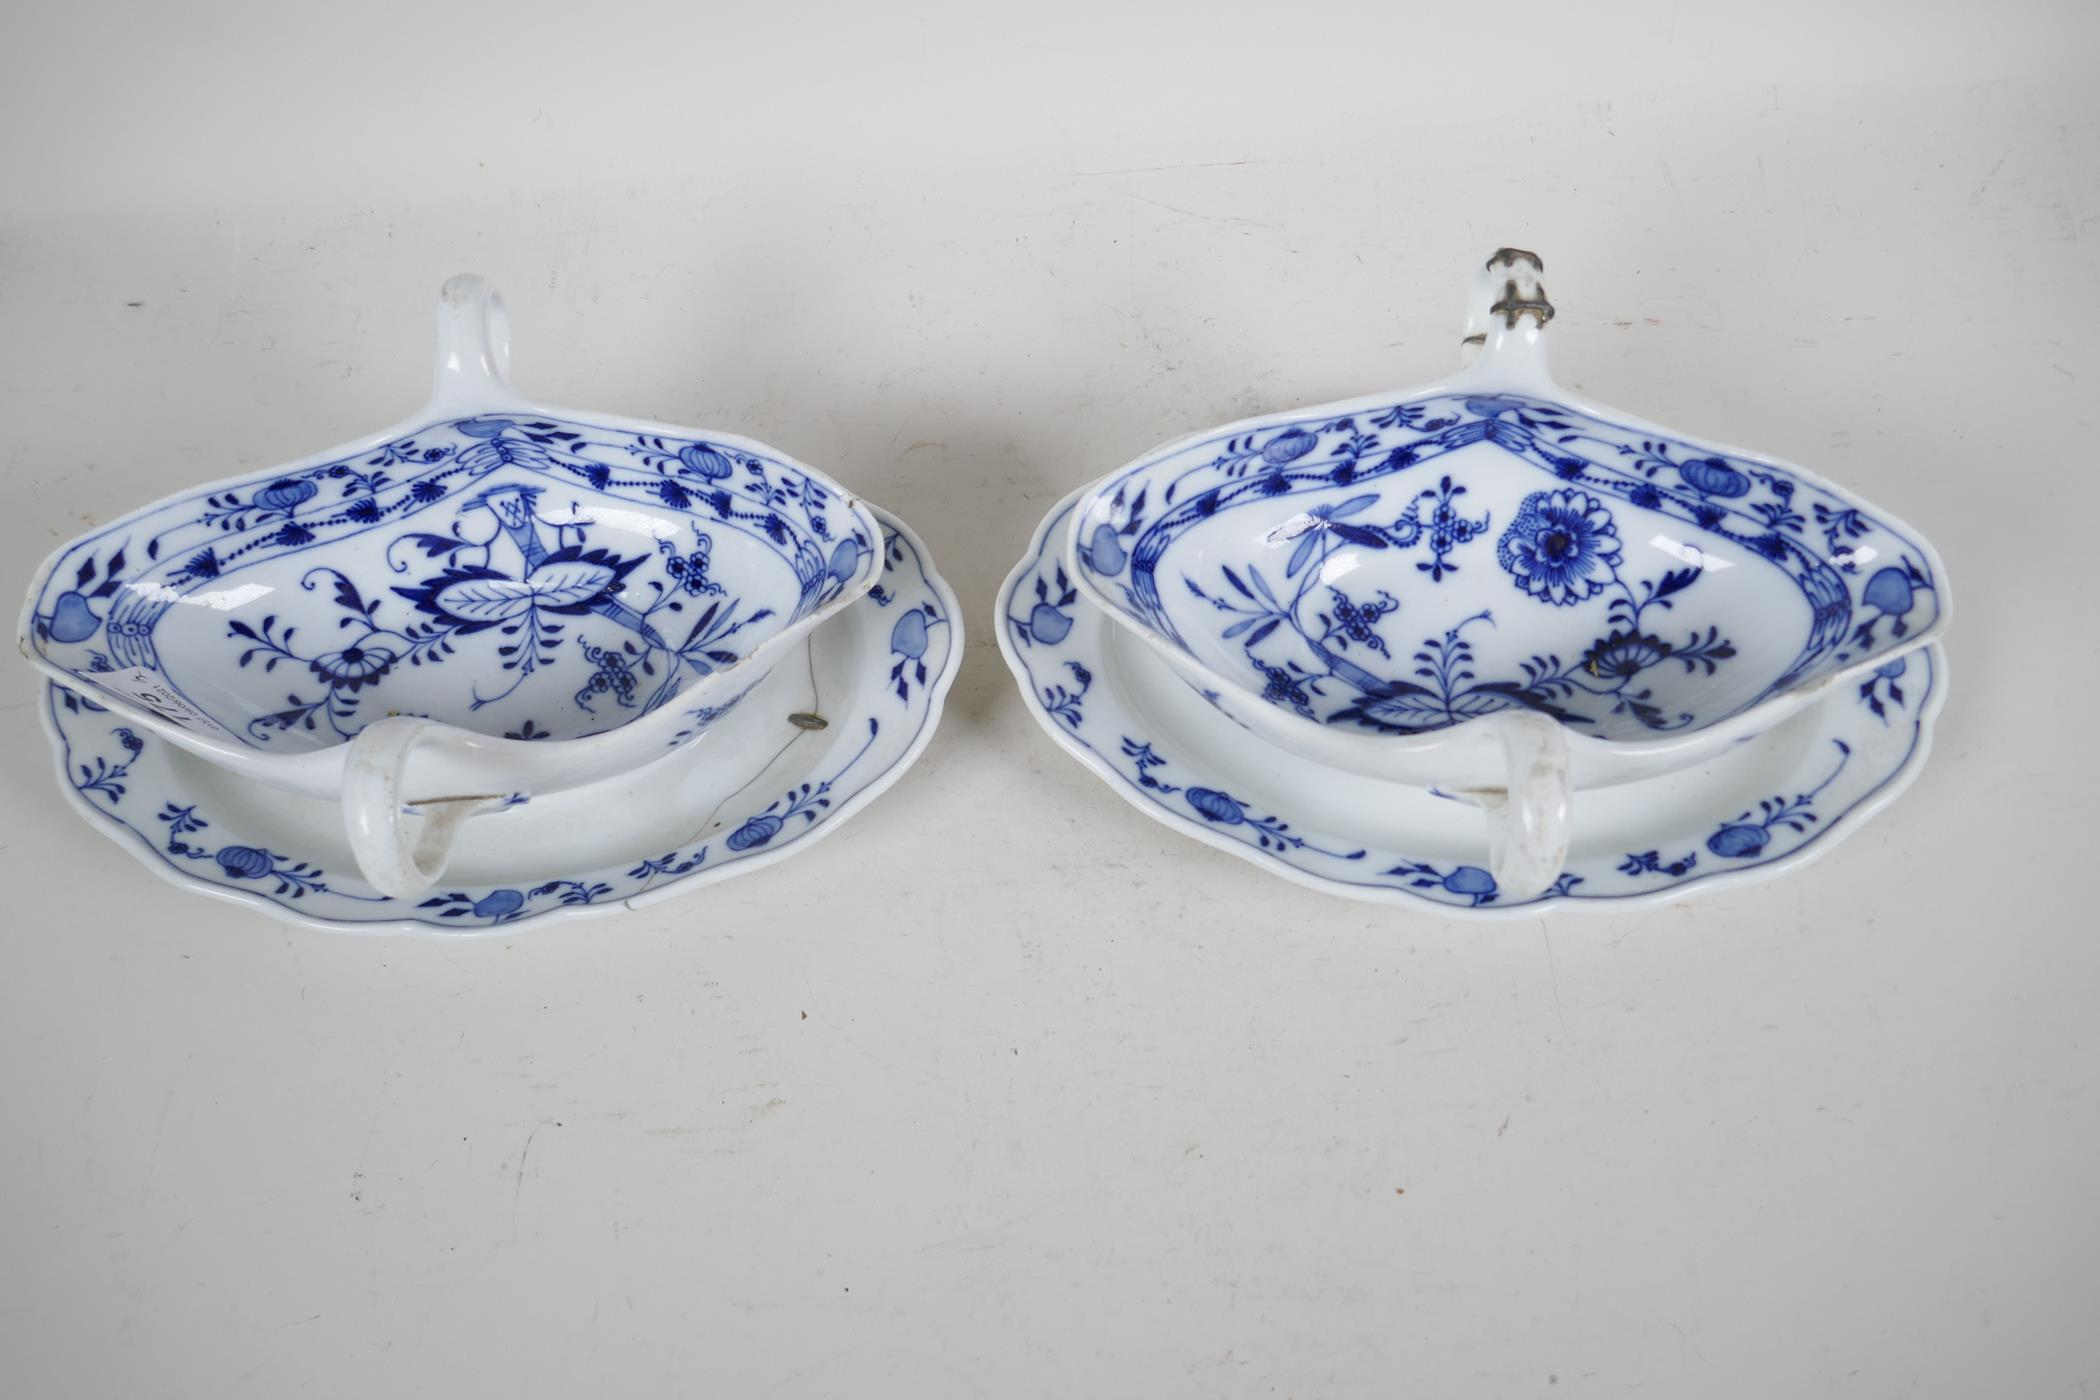 """A pair of late C18th/early C19th Meissen 'Onion' Pattern blue and white two handled gravy boats, 10"""" - Image 2 of 8"""